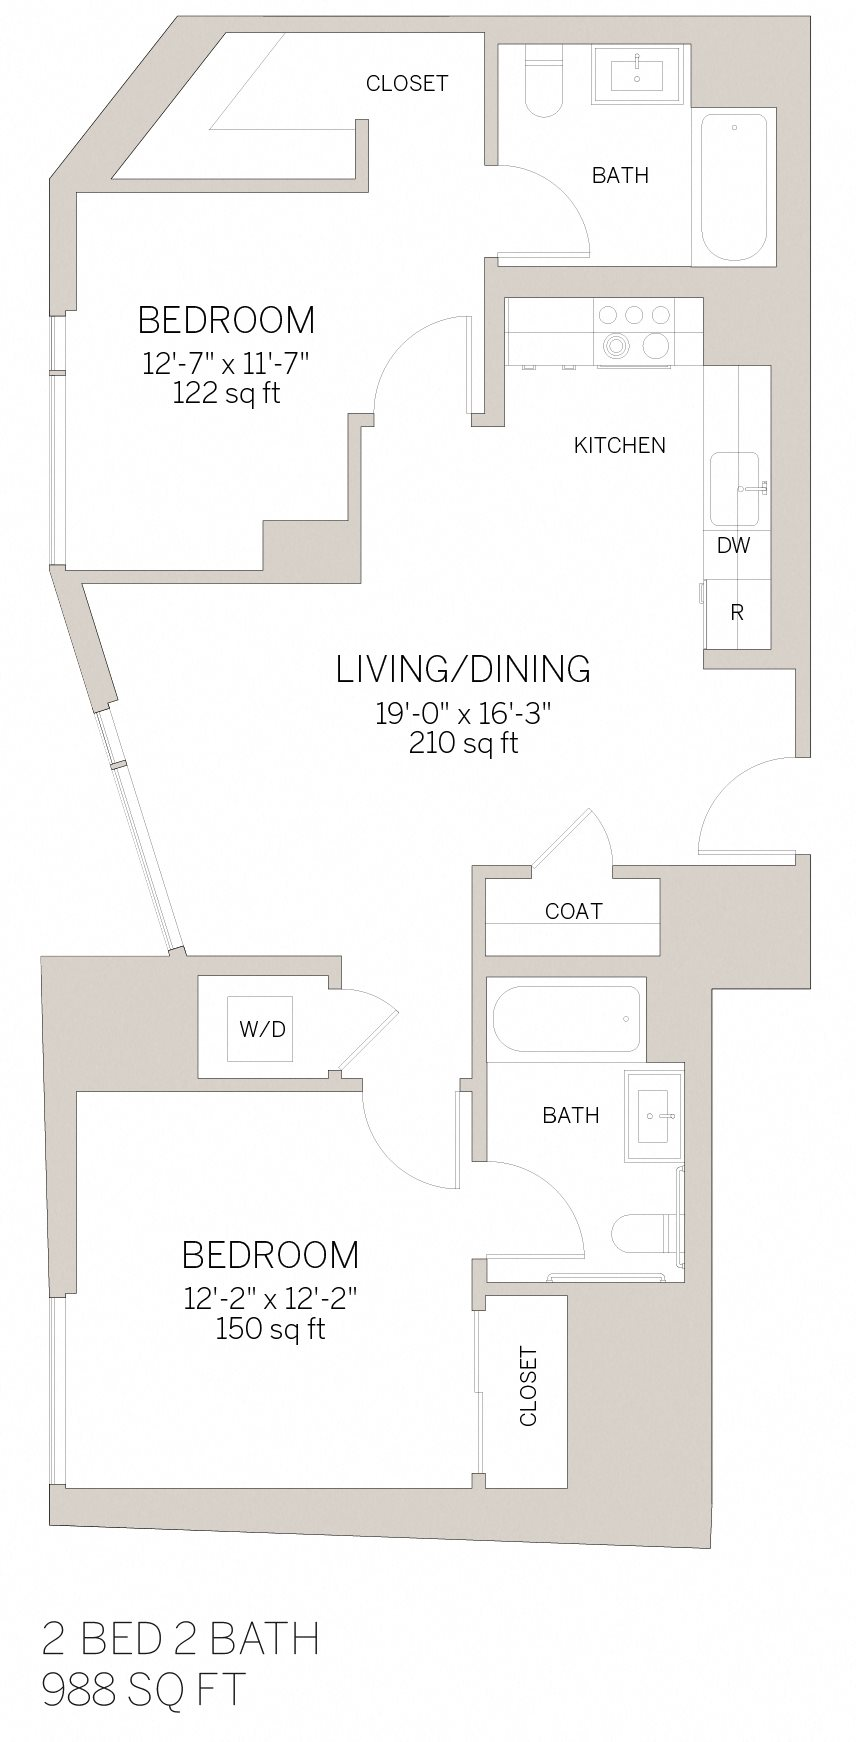 Two Bedroom - S Floor Plan 9